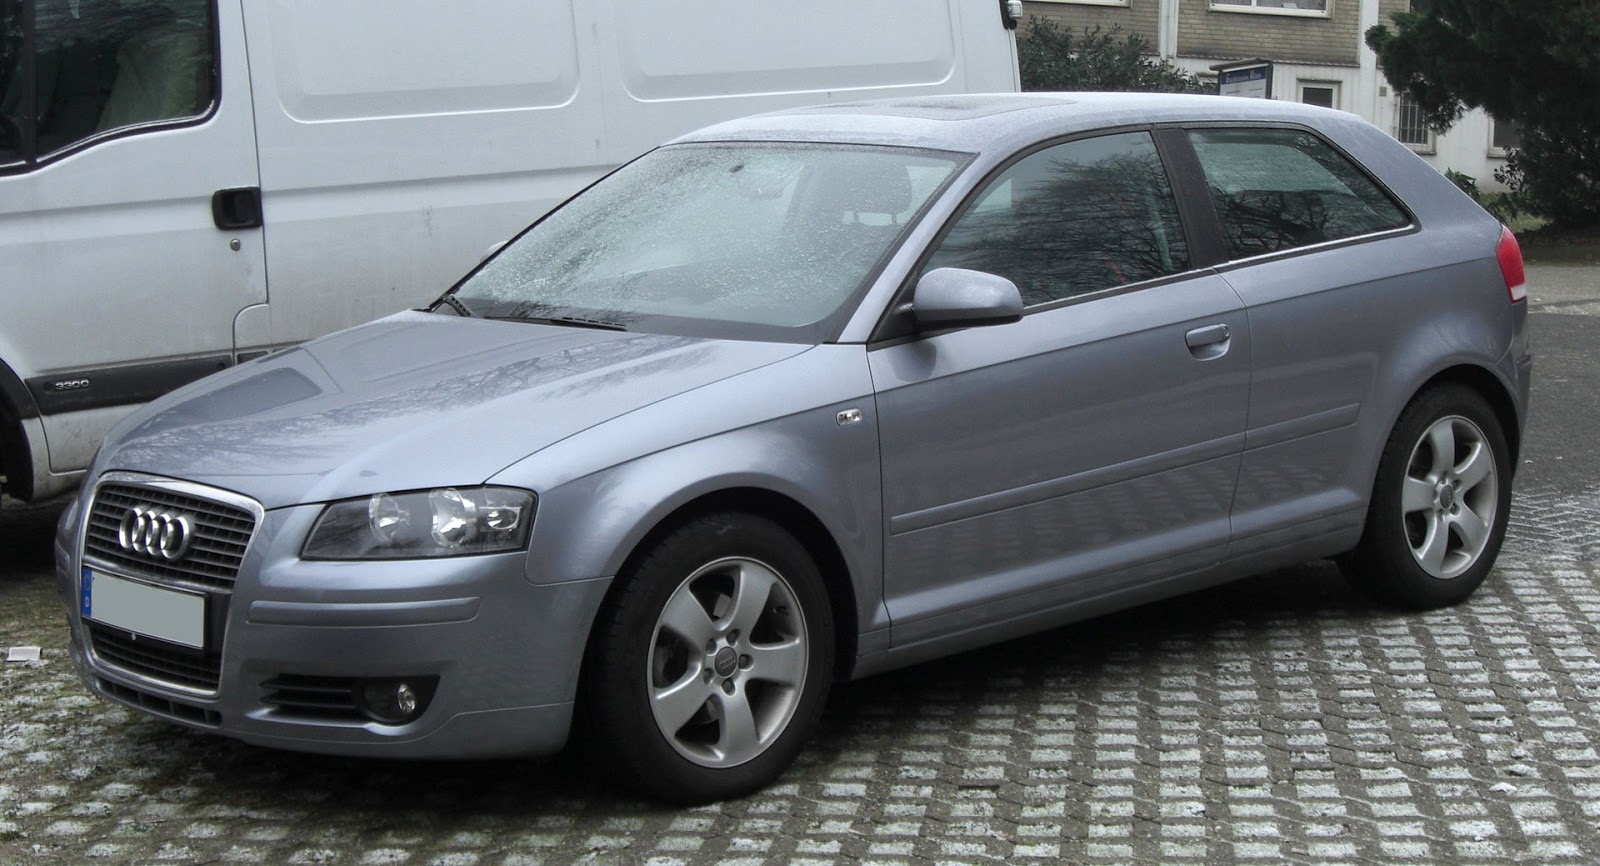 Audi A3 II (8P) 2003 - 2005 Hatchback 3 door :: OUTSTANDING CARS